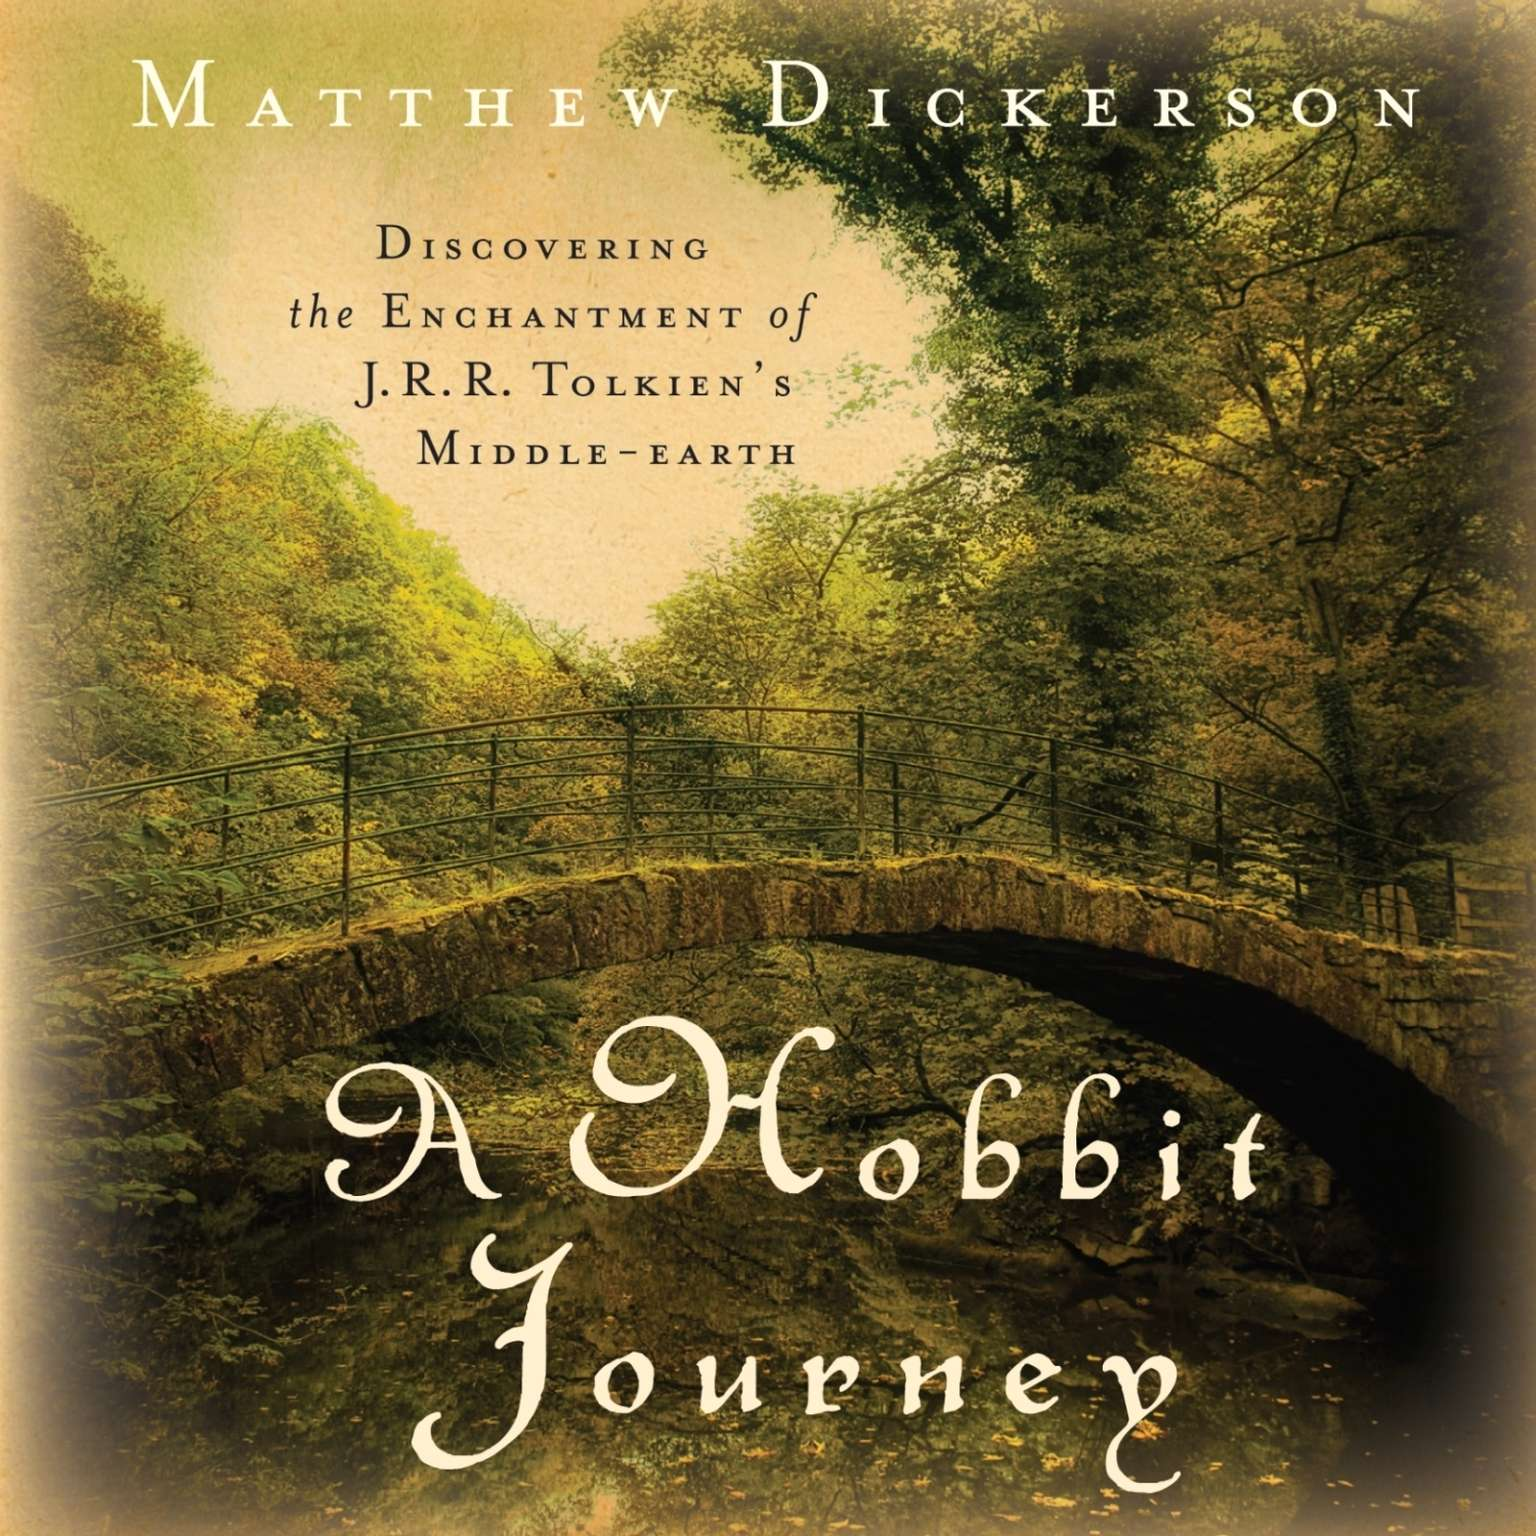 Printable A Hobbit Journey: Discovering the Enchantment of J. R. R. Tolkien's Middle-earth Audiobook Cover Art